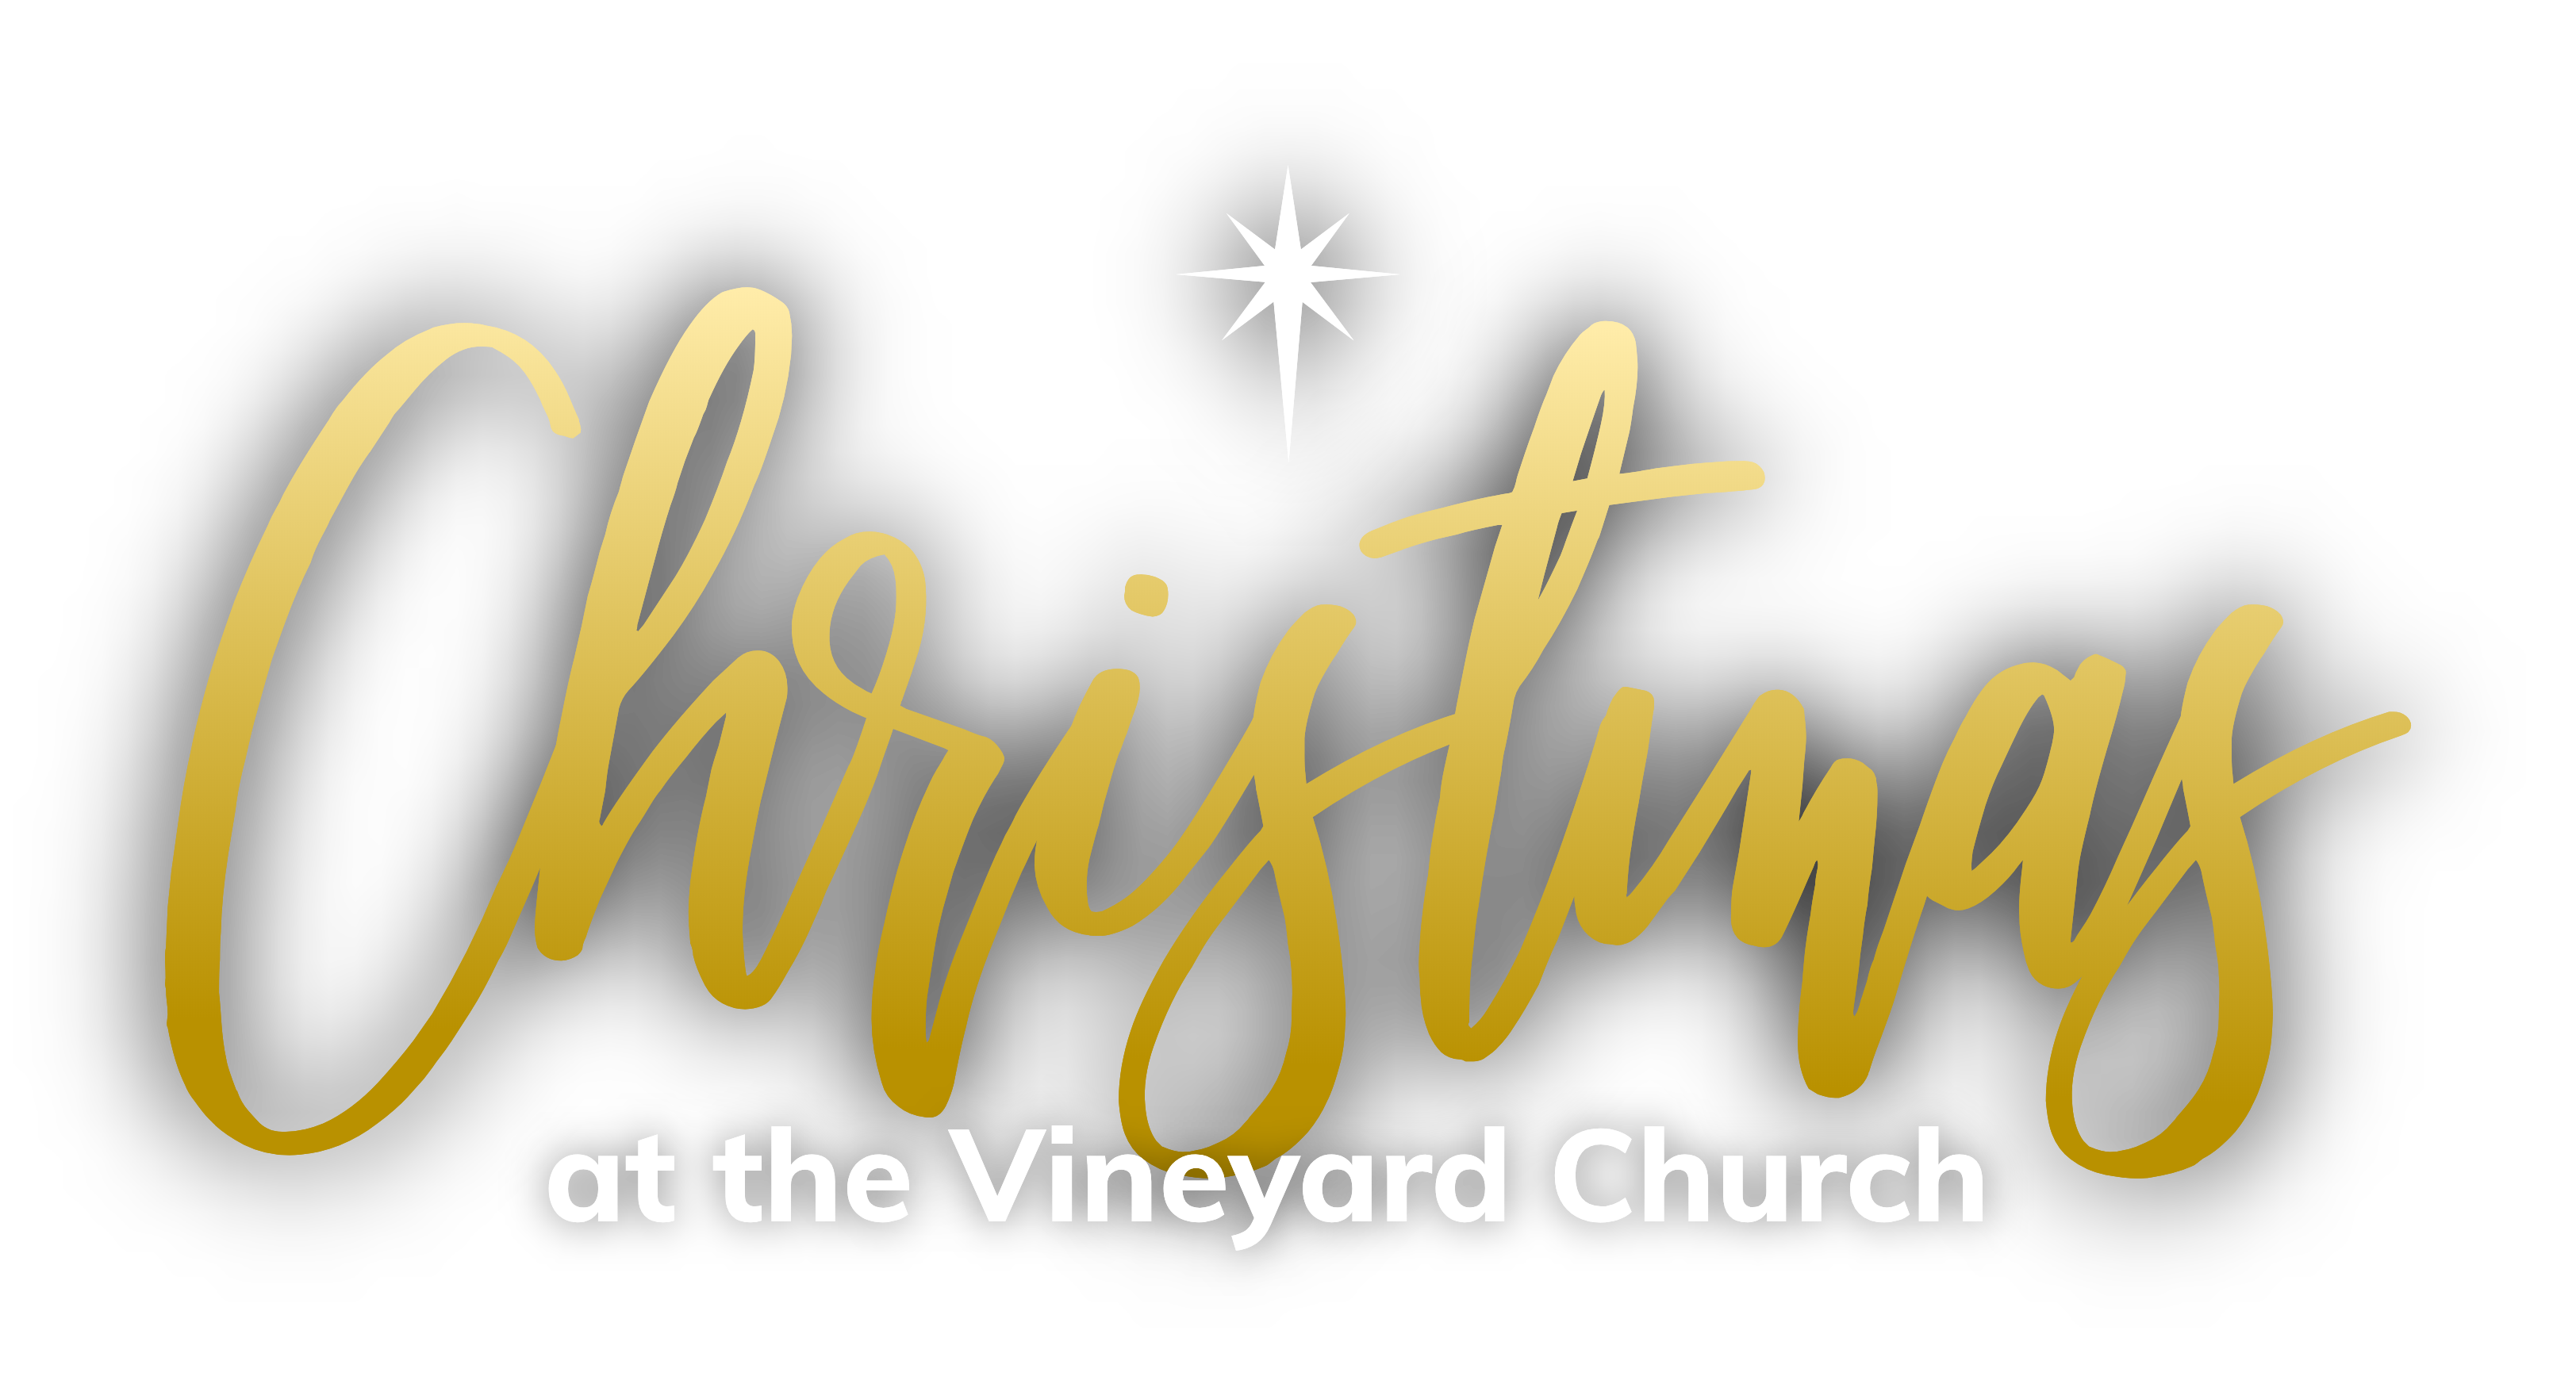 Christmas at the Vineyard Church